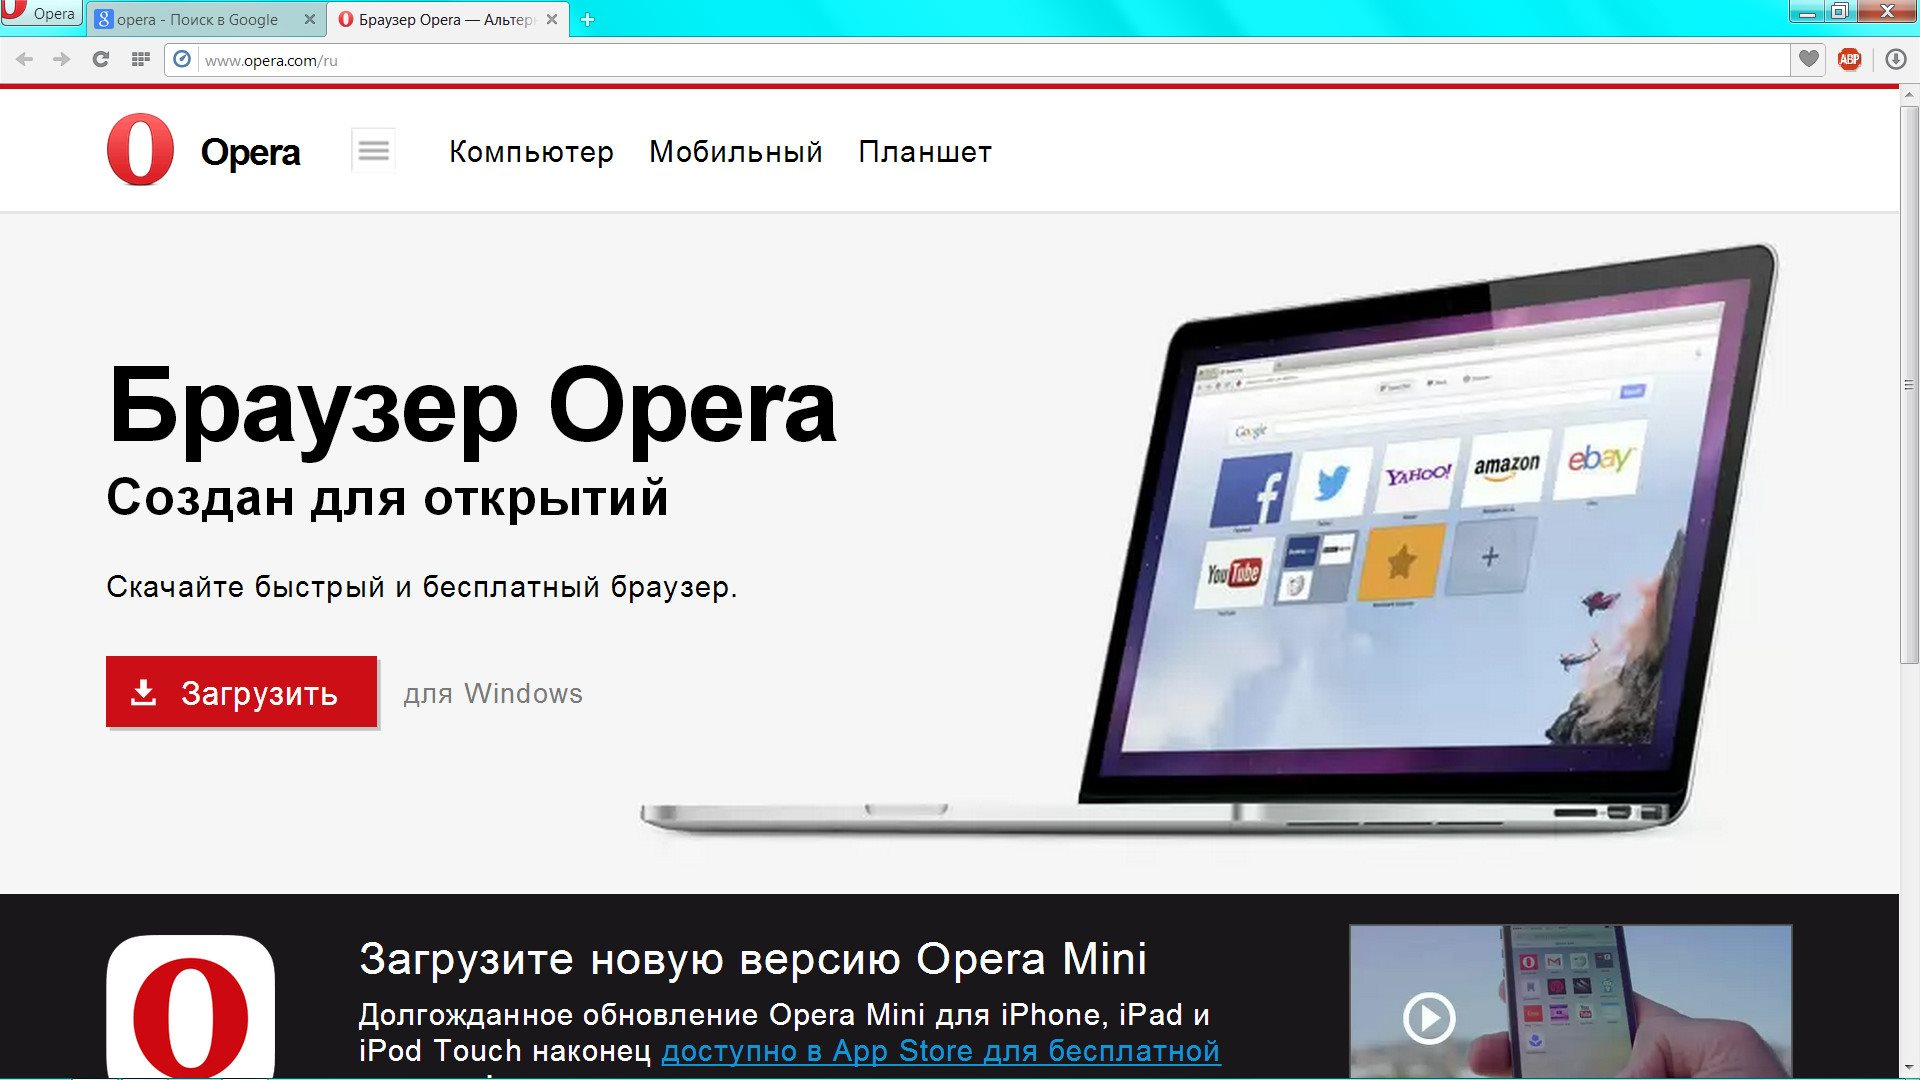 Opera 24.0.1558.53 Stable [Freeware]